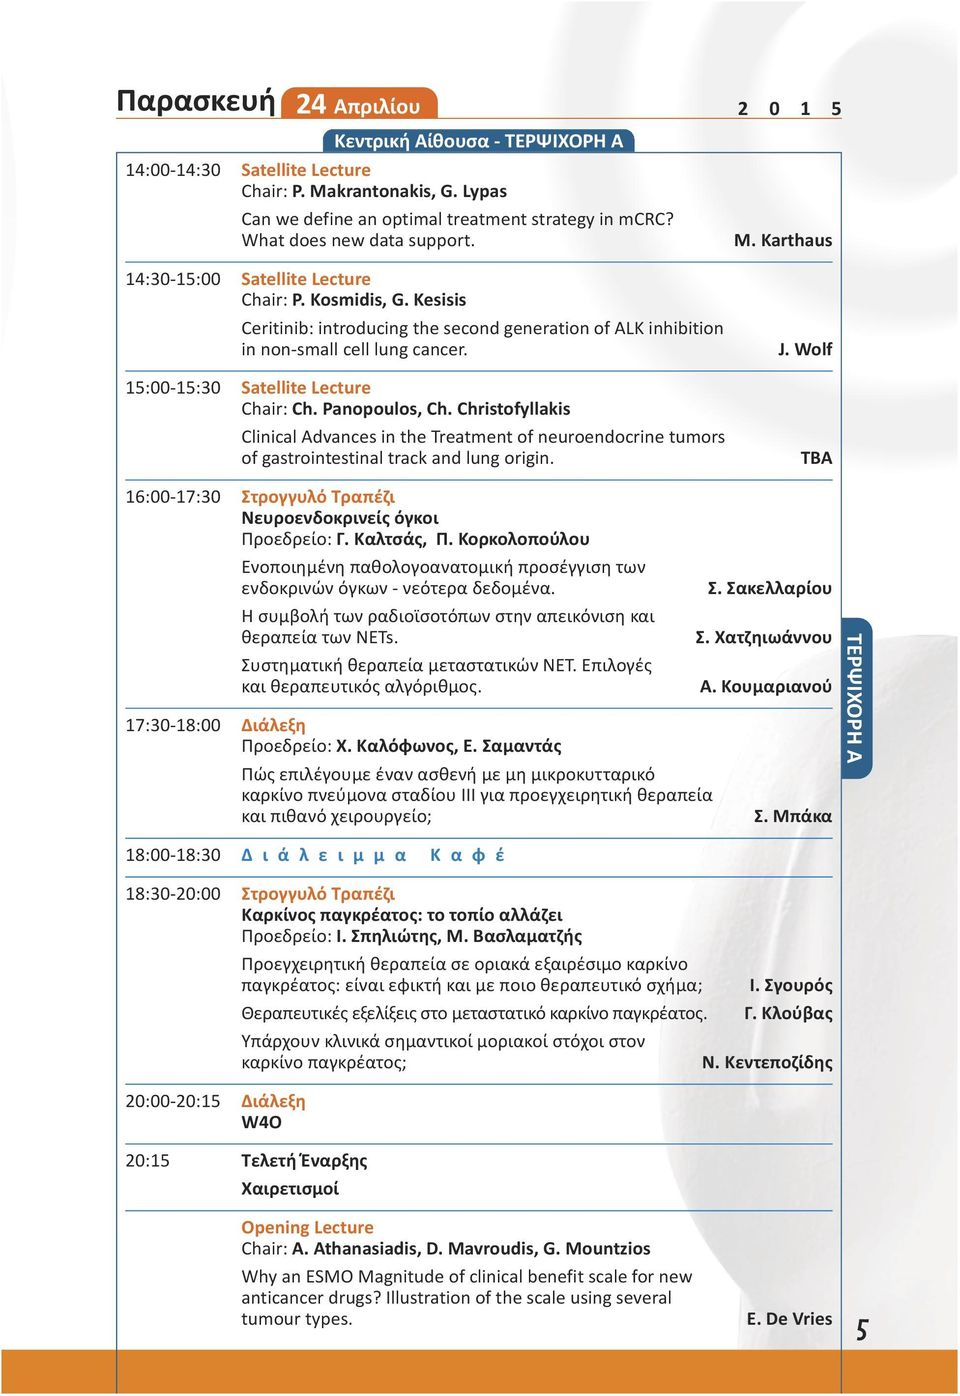 15:00-15:30 Satellite Lecture Chair: Ch. Panopoulos, Ch. Christofyllakis Clinical Advances in the Treatment of neuroendocrine tumors of gastrointestinal track and lung origin. J.